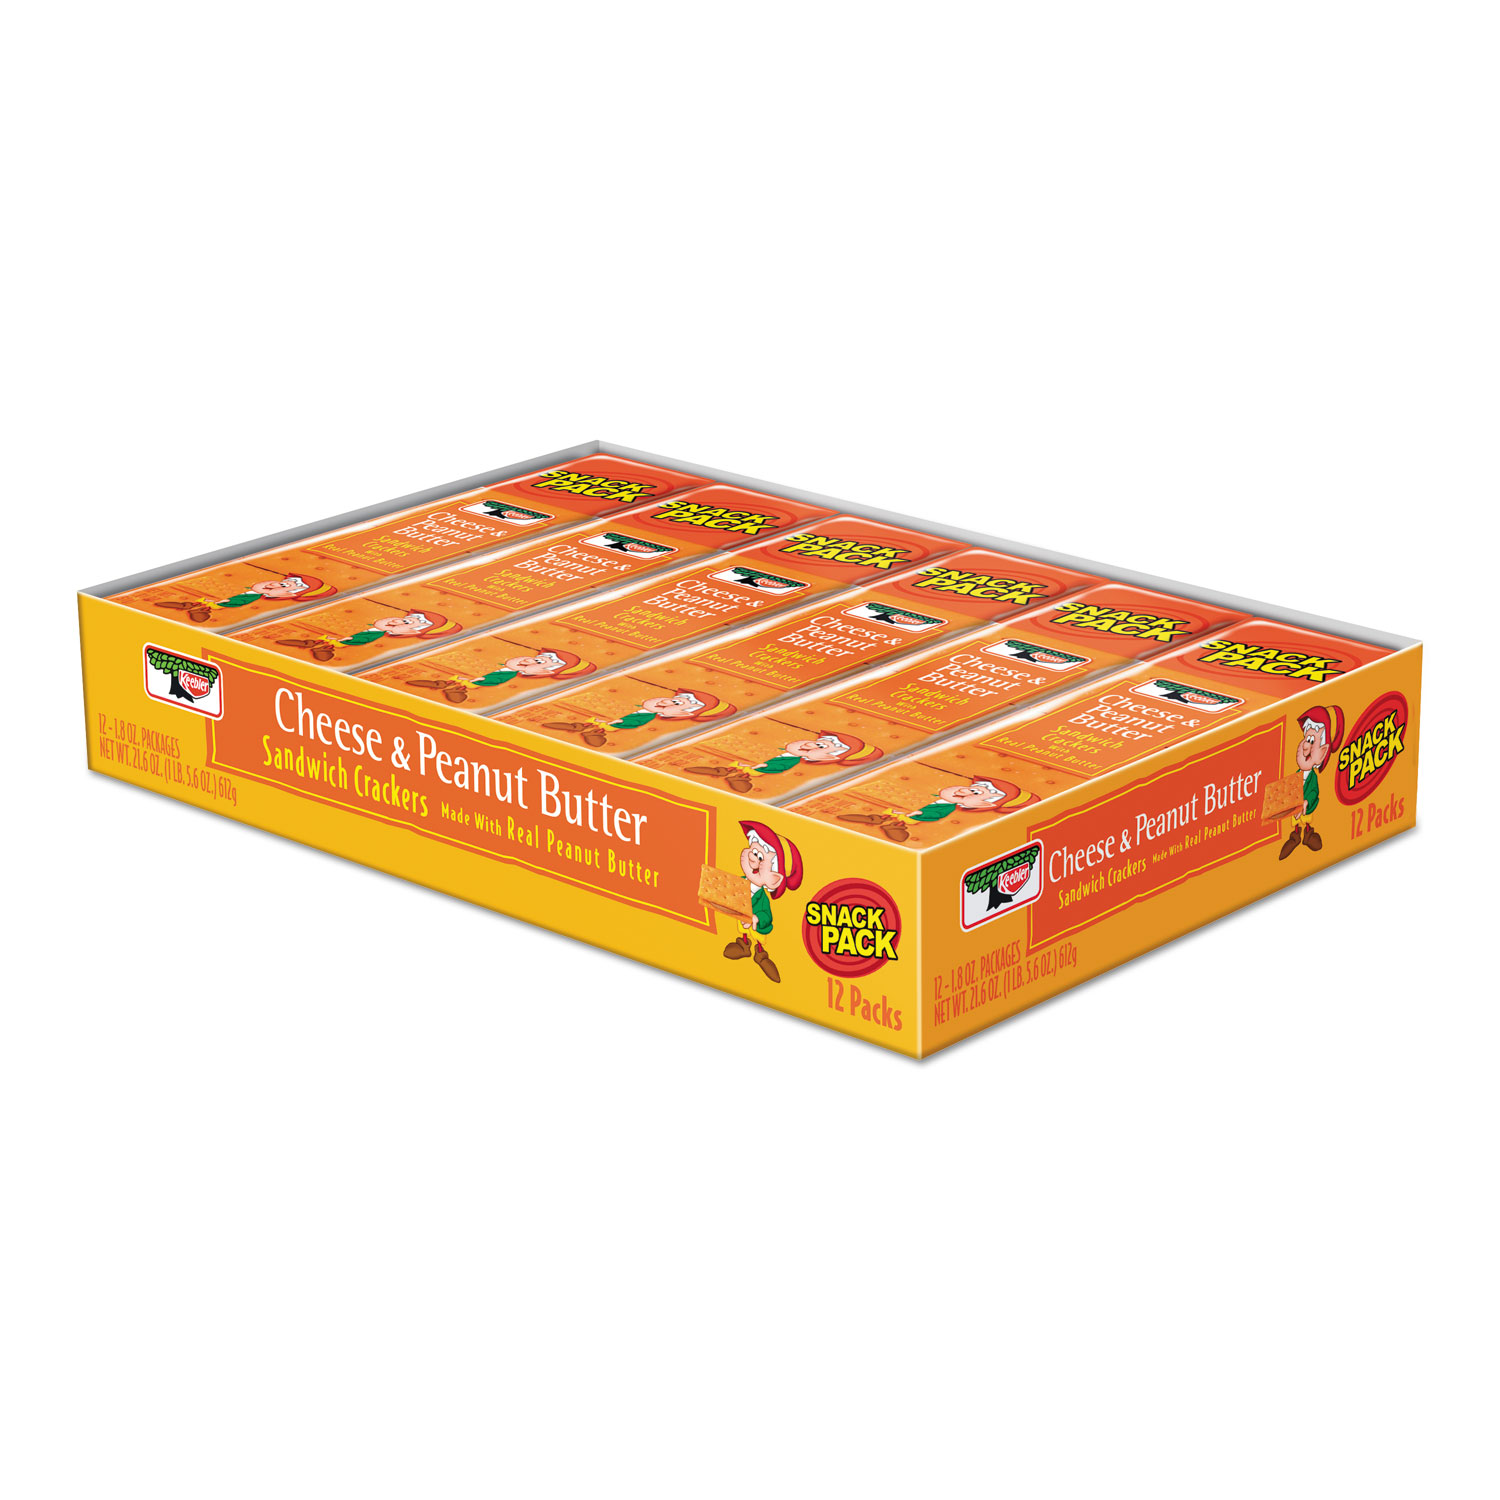 Sandwich Crackers, Cheese and Peanut Butter, 8-Piece Snack Pack, 12/Box